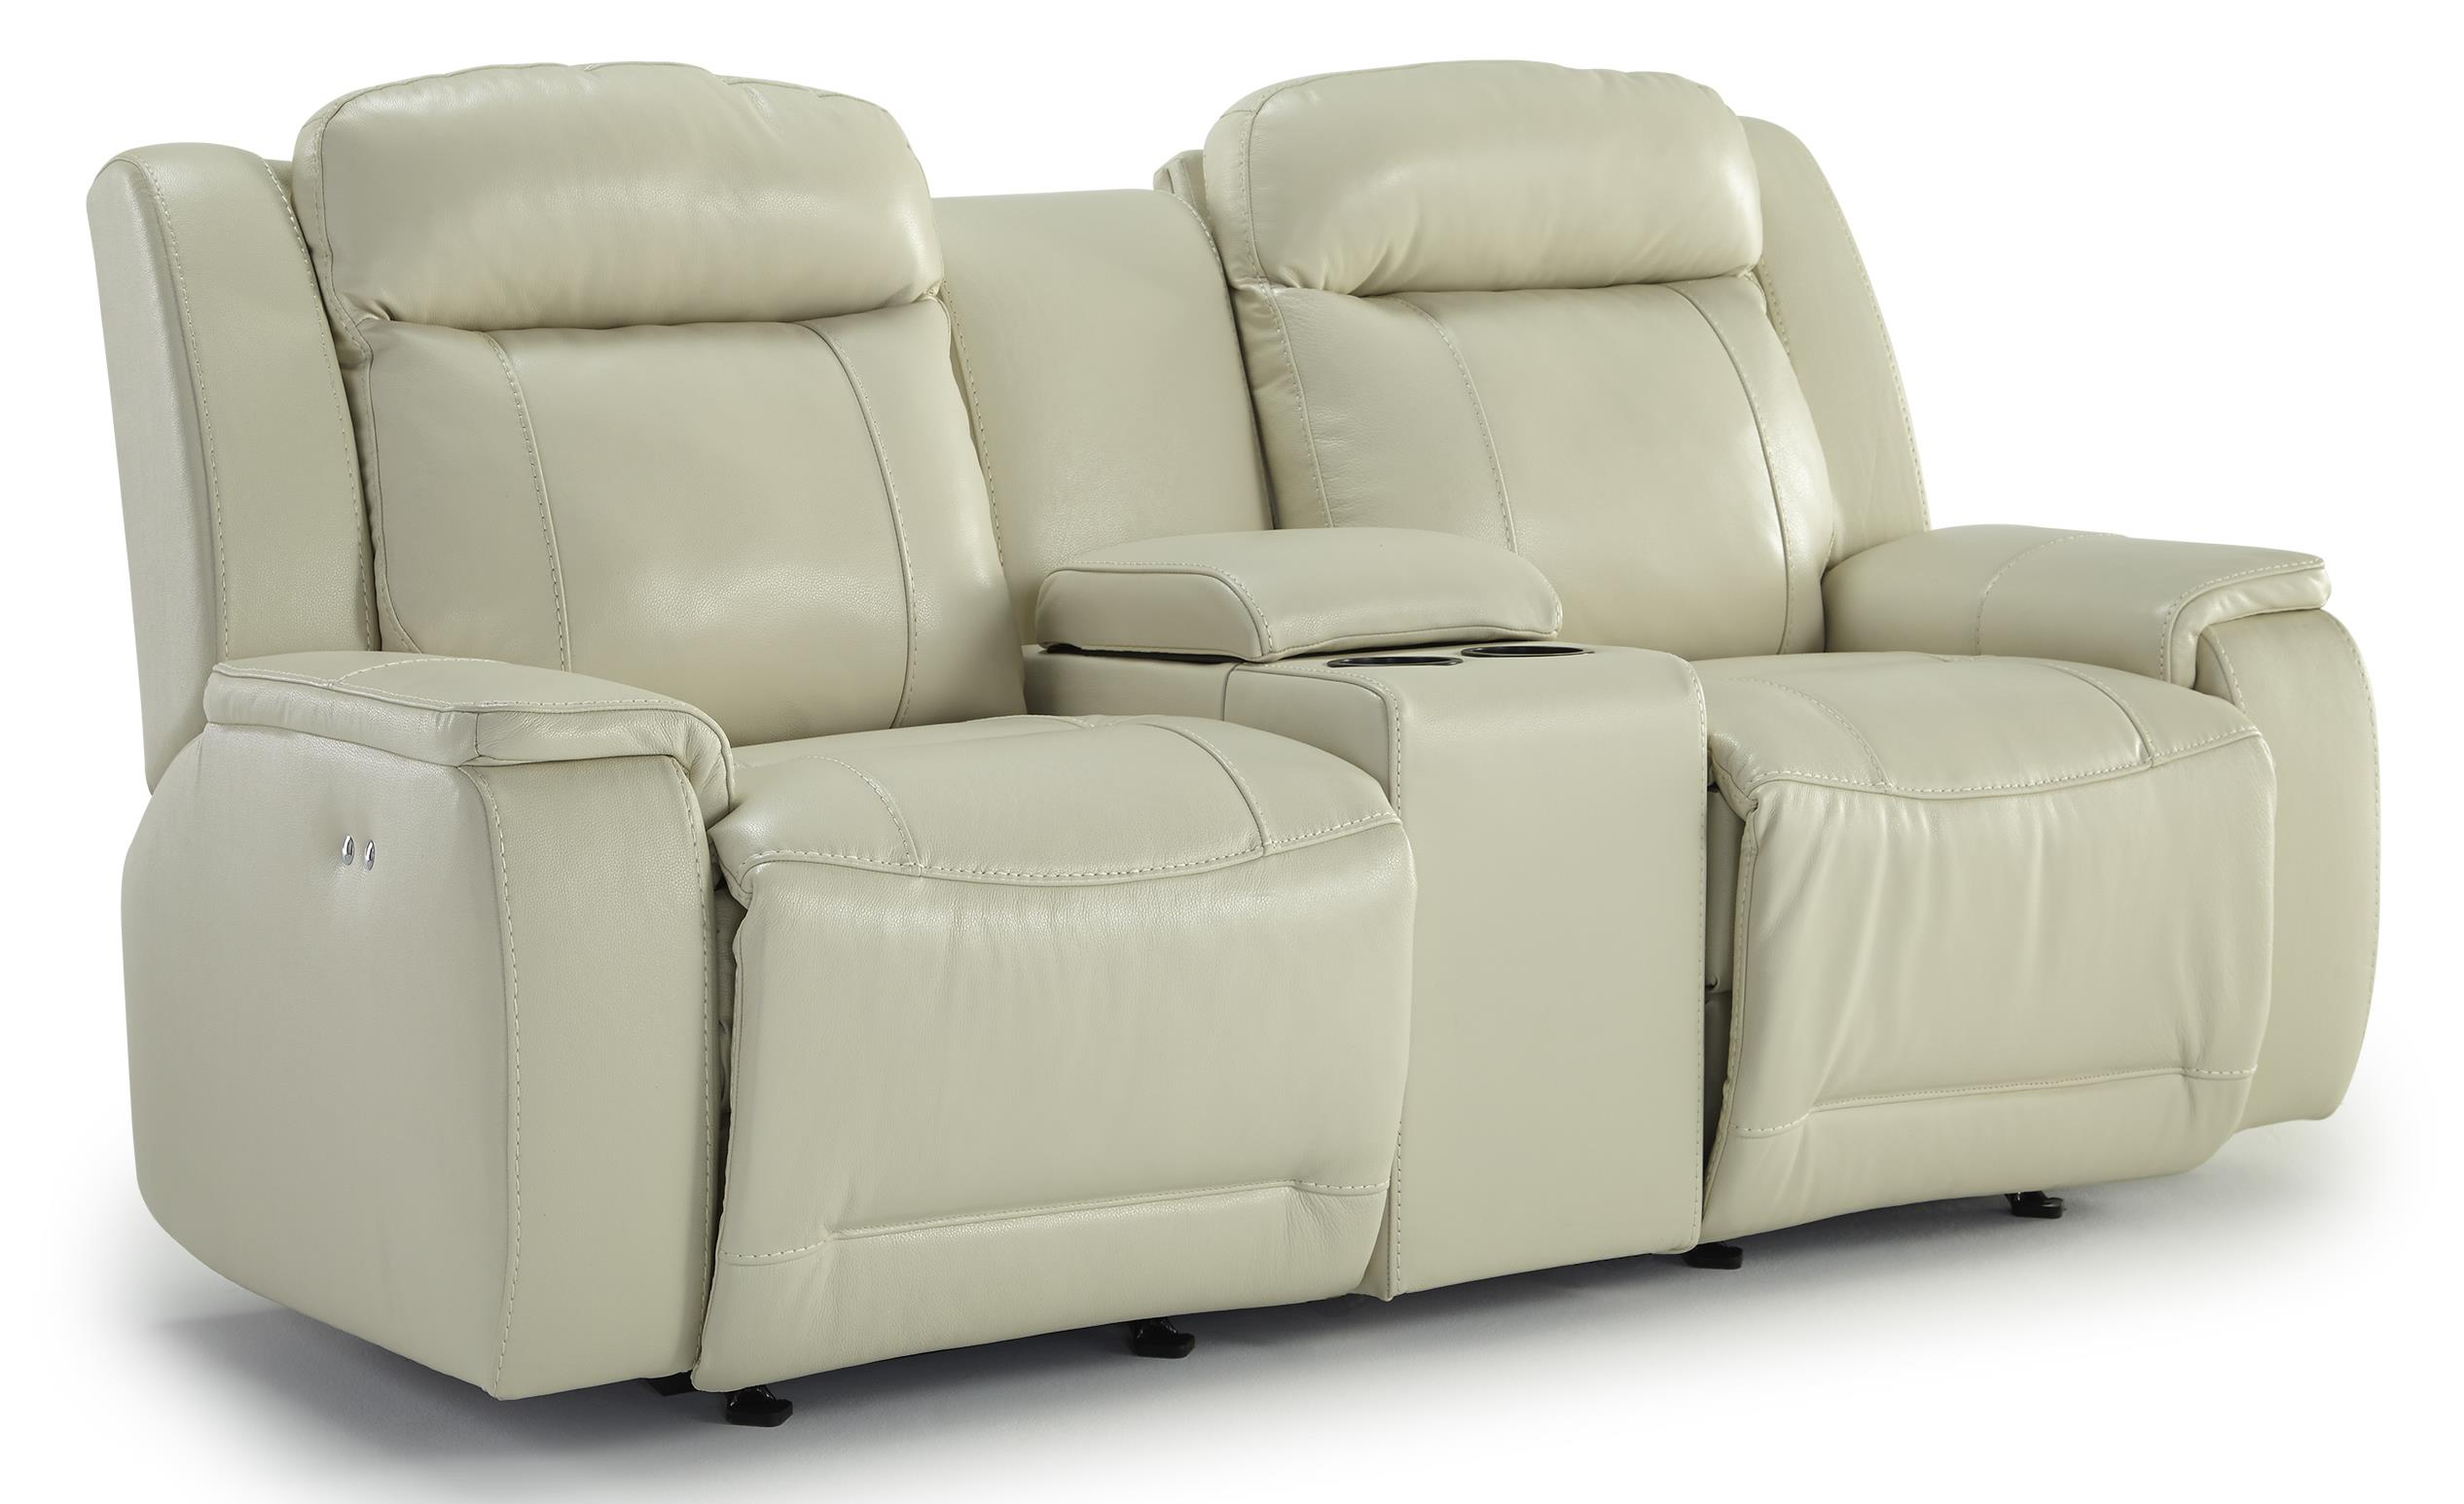 Best Home Furnishings Hardisty Power Space Saver Reclining Loveseat With Cupholder And Storage